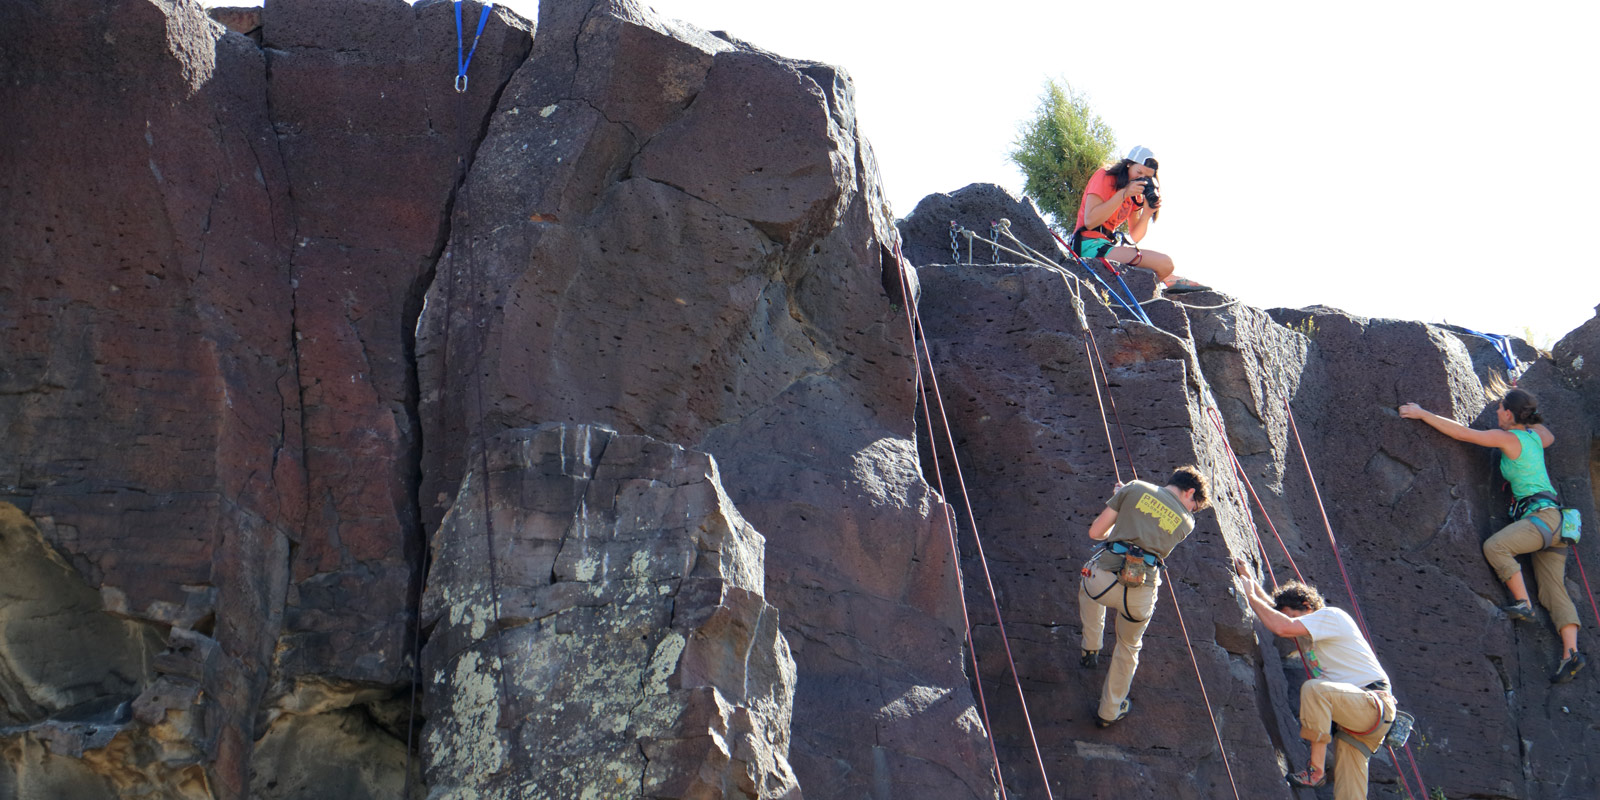 image: Pocatello Pump climbers